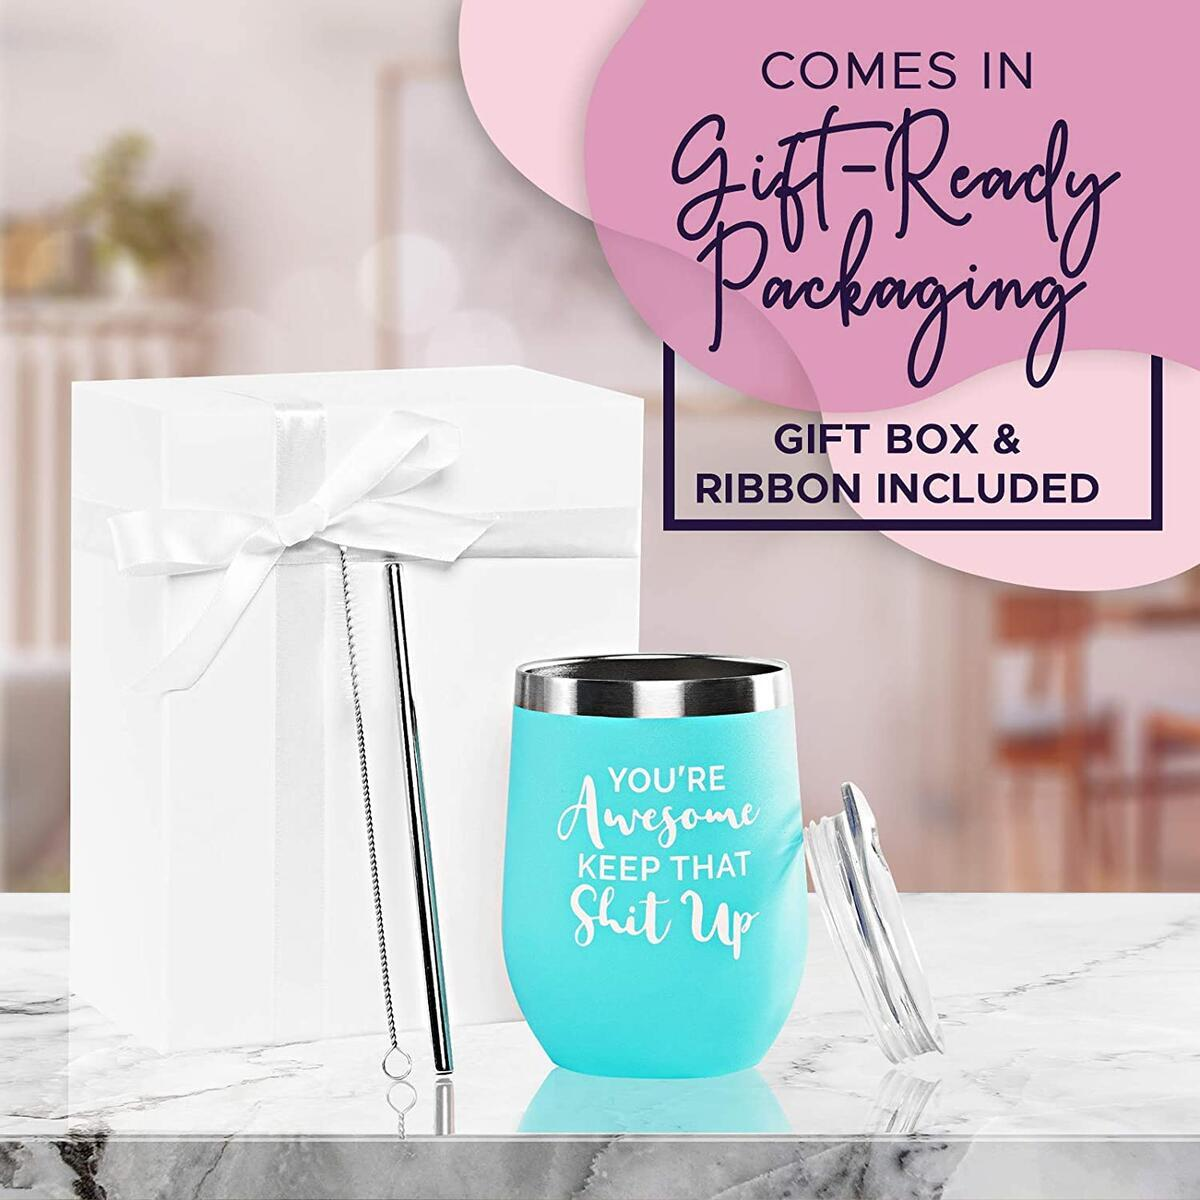 You Are Awesome - Mint Wine Tumbler G6-VF7M-IEY0 11172020